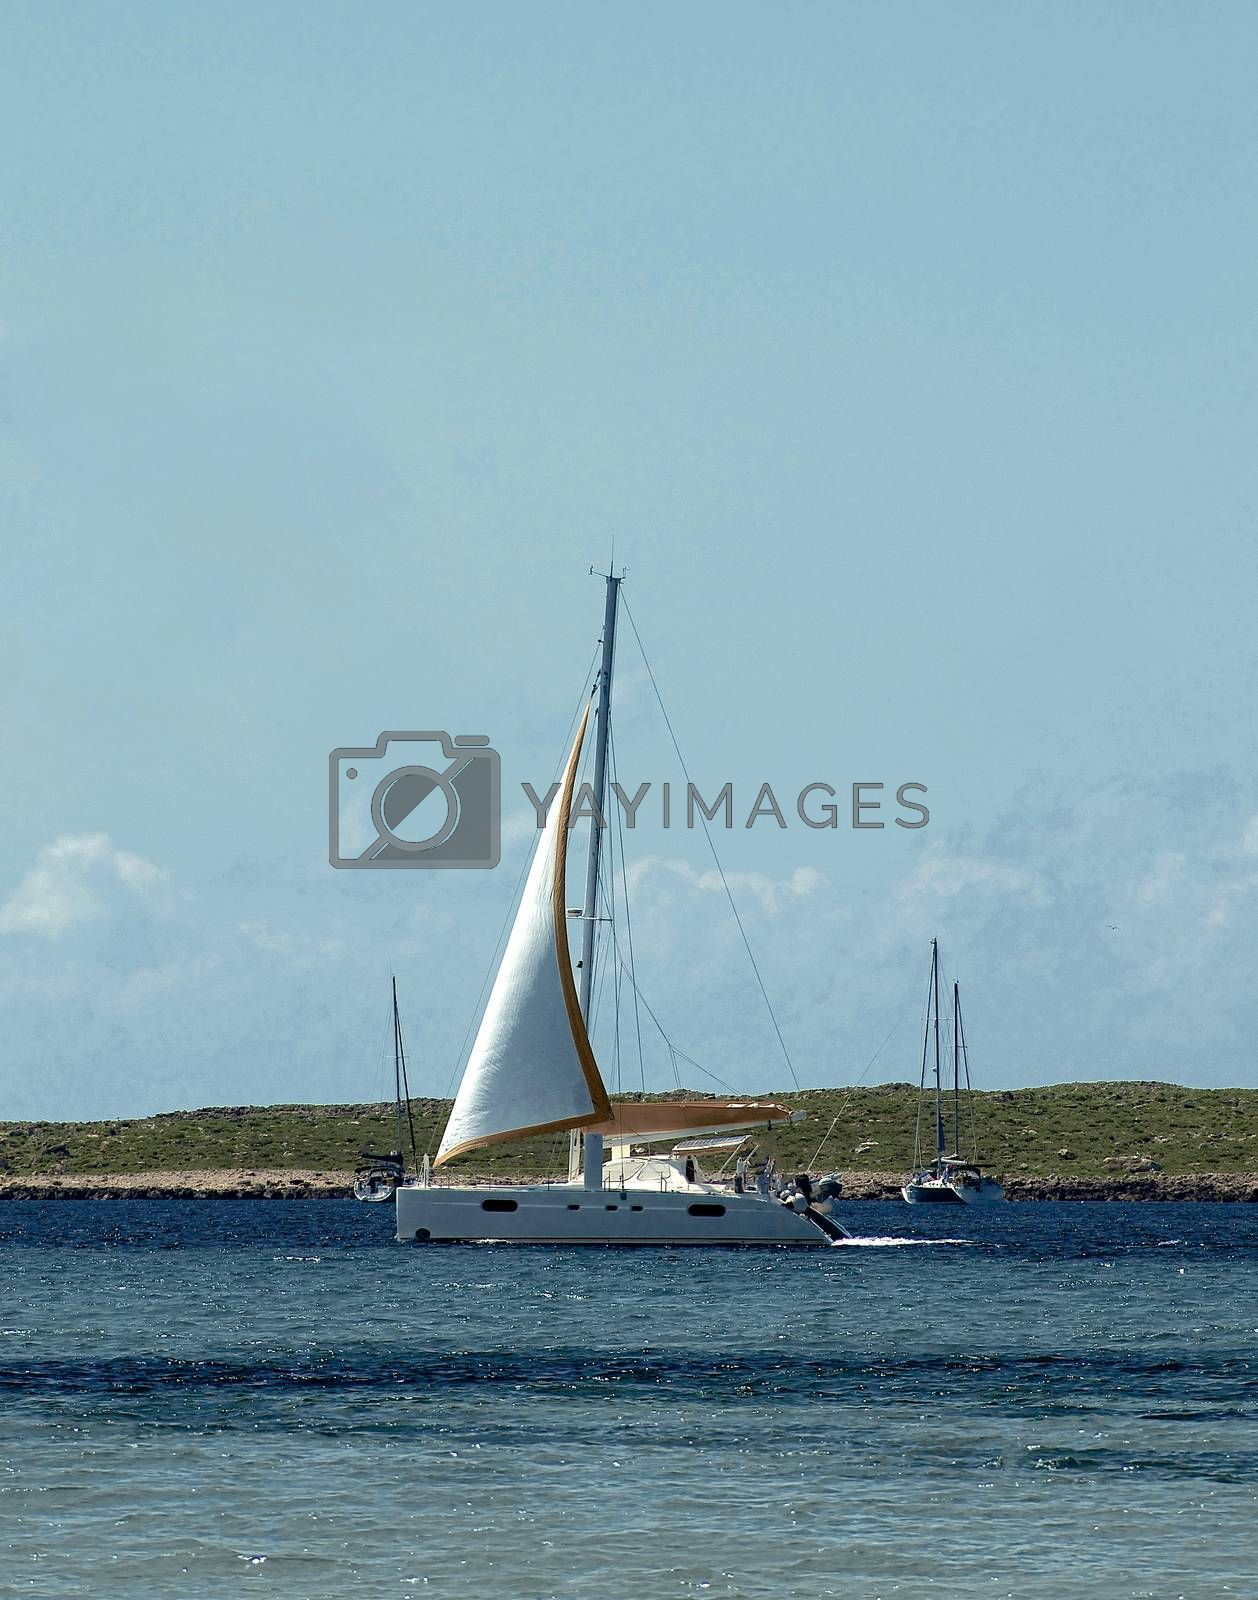 Small White Yachts in Beauty Harbor against Azure Sky near North West Coast of Menorca, Balearic Islands